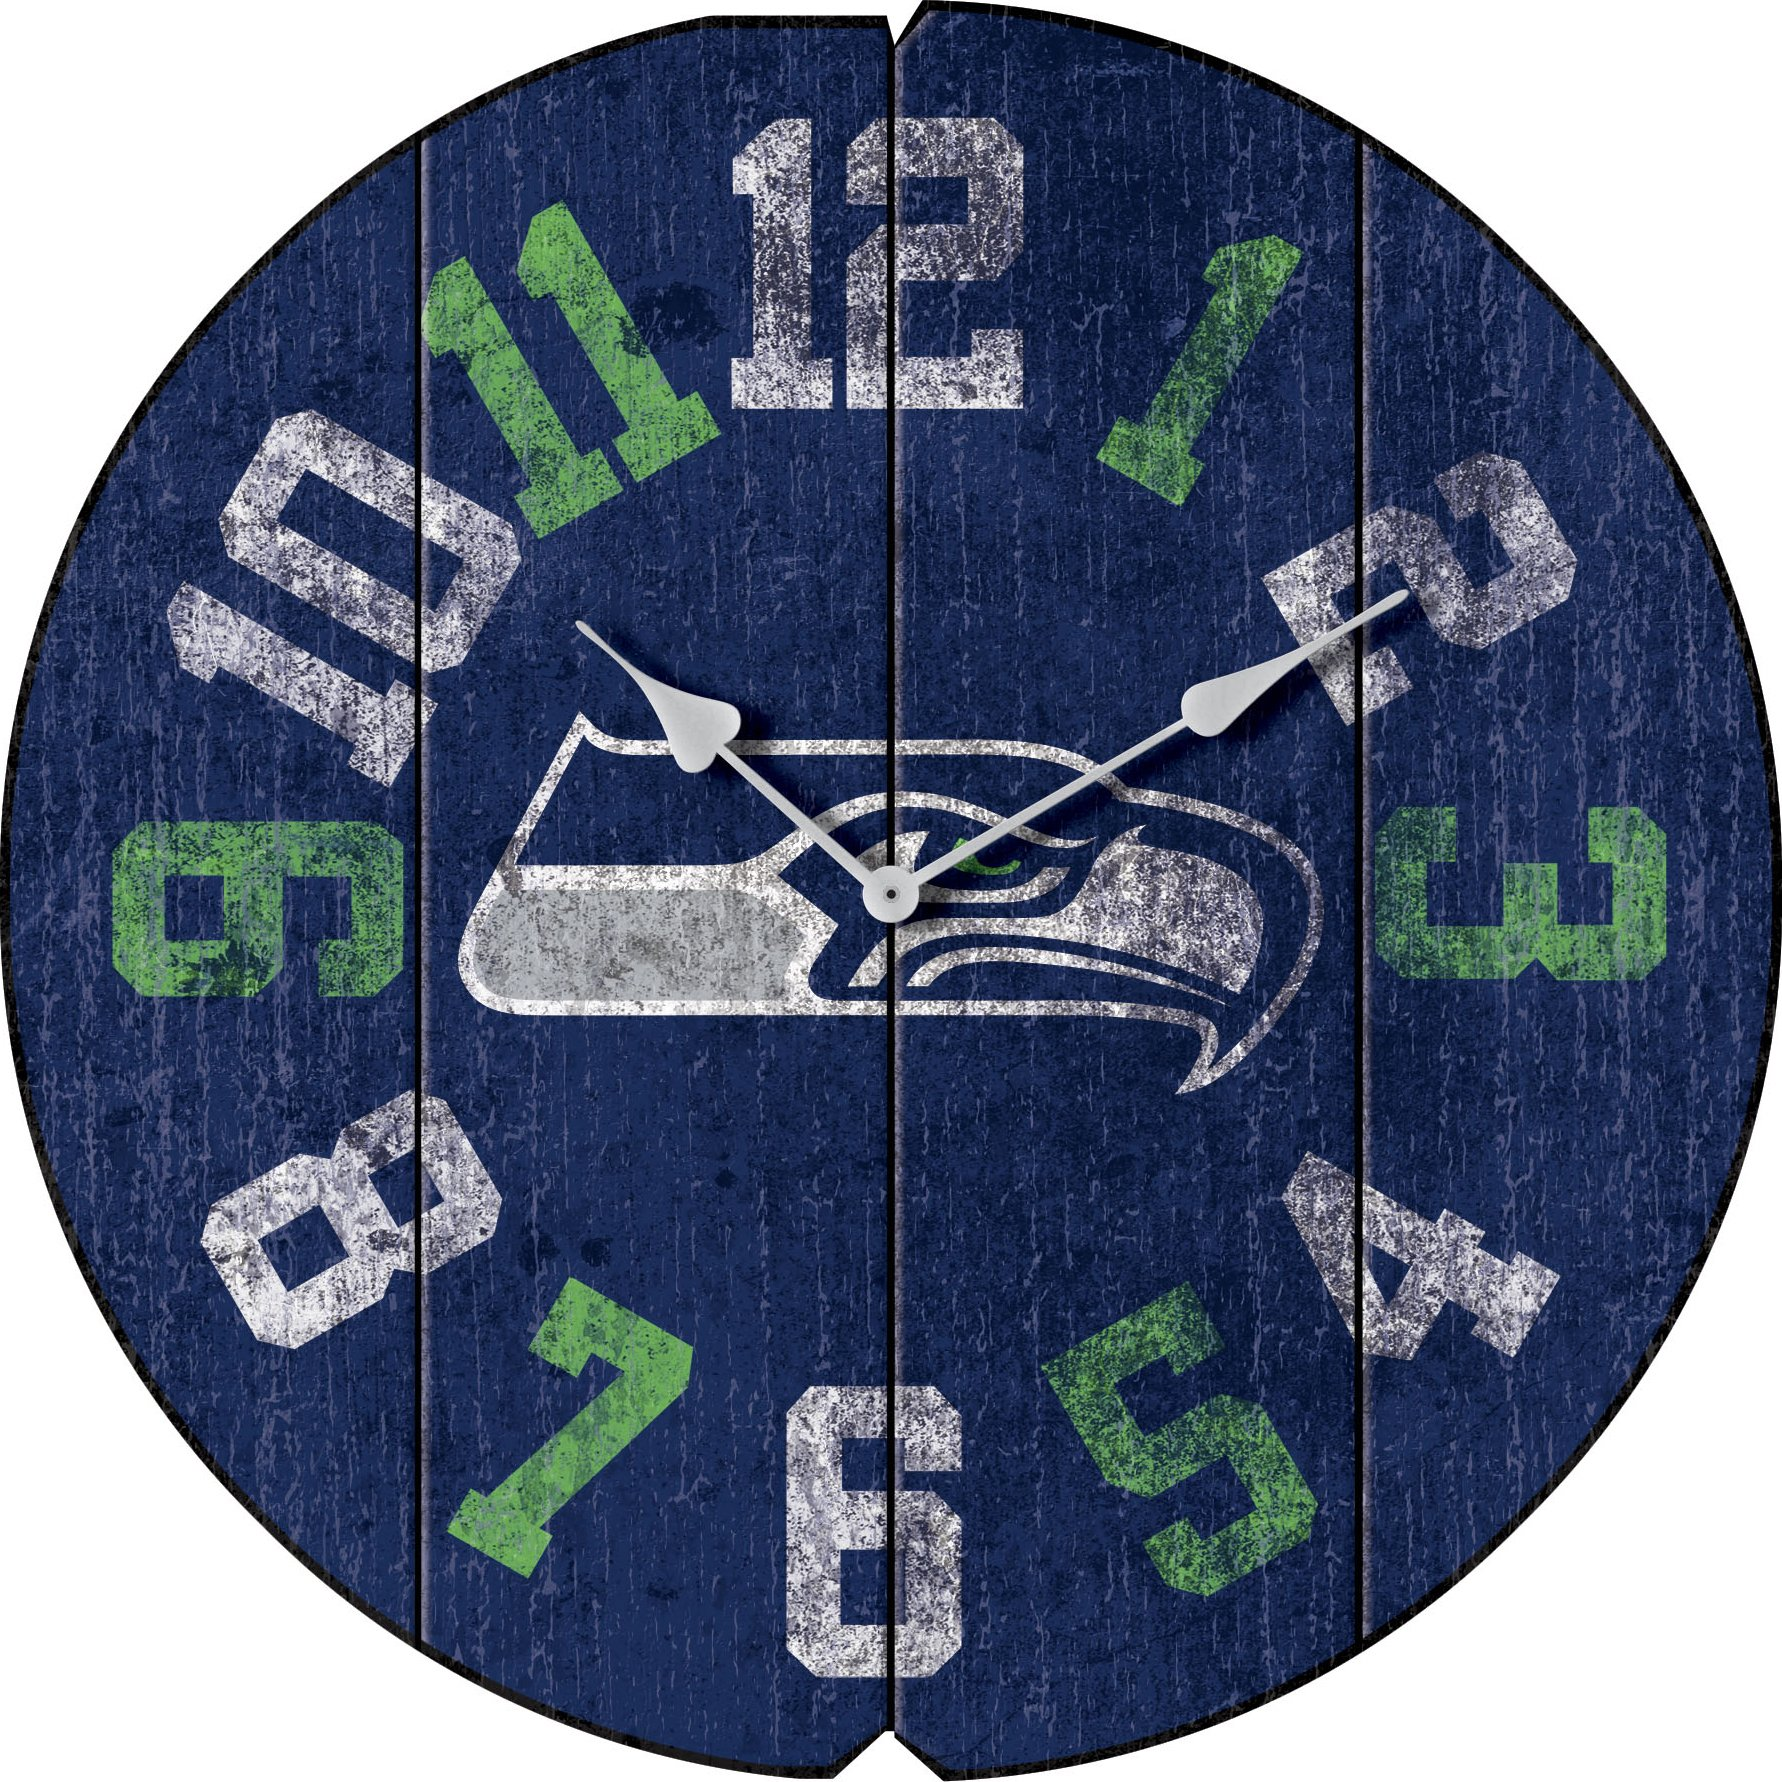 Imperial Officially Licensed NFL Merchandise: Vintage Round Clock, Seattle Seahawks by Imperial